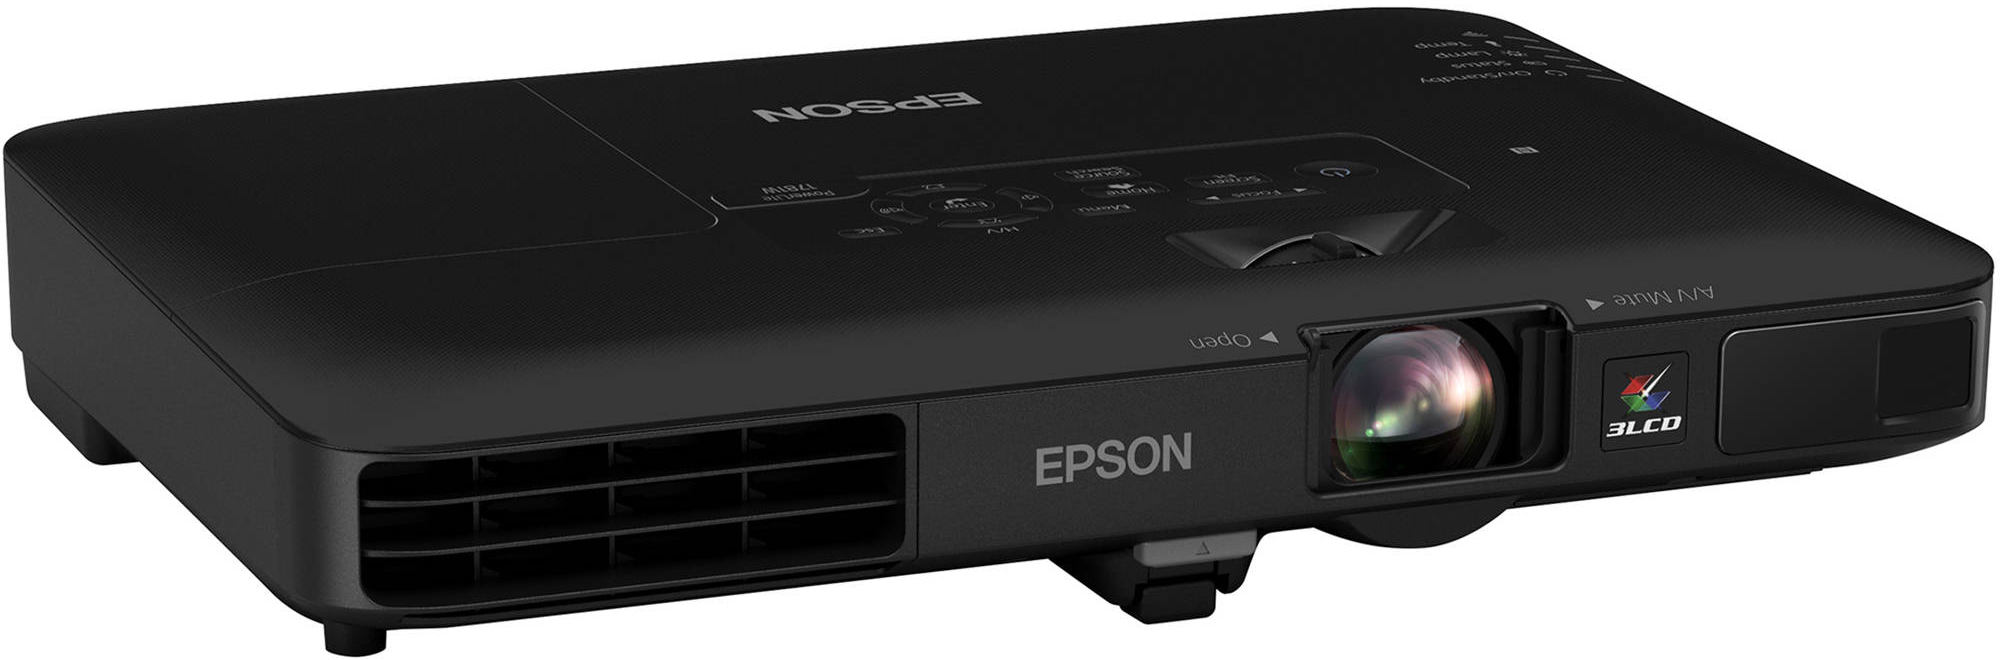 Buying Guide to Projectors | B&H Explora